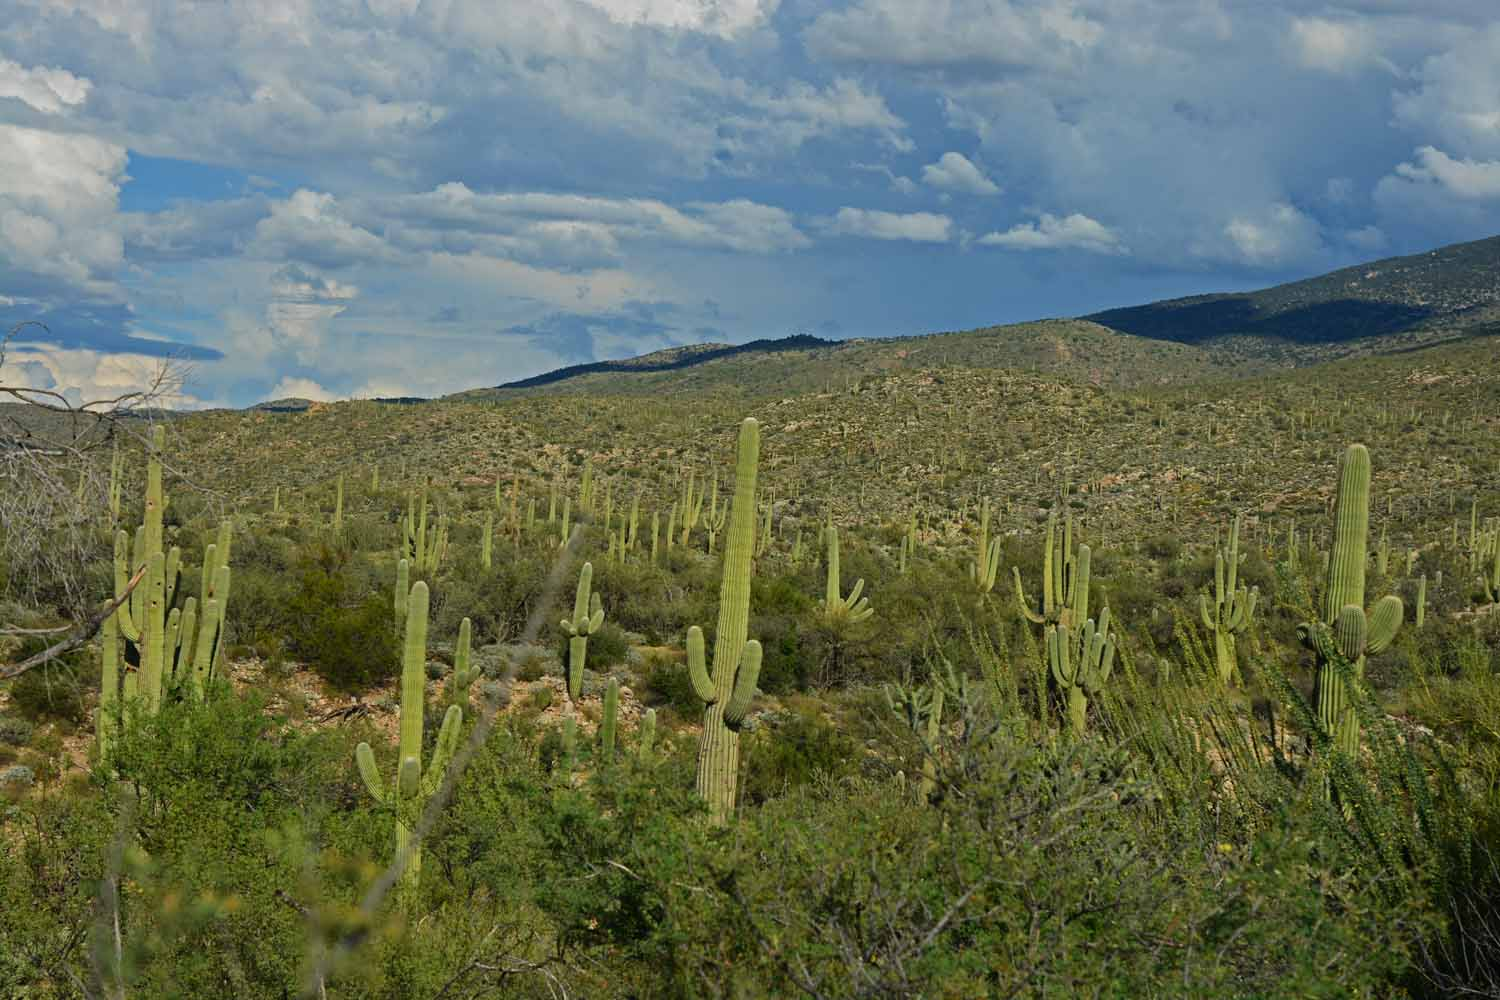 Everywhere you look there are plenty of Saguaros.  After 75 years these cactus get their arms.  Many of these are over 100 years old and over 70 ft tall.